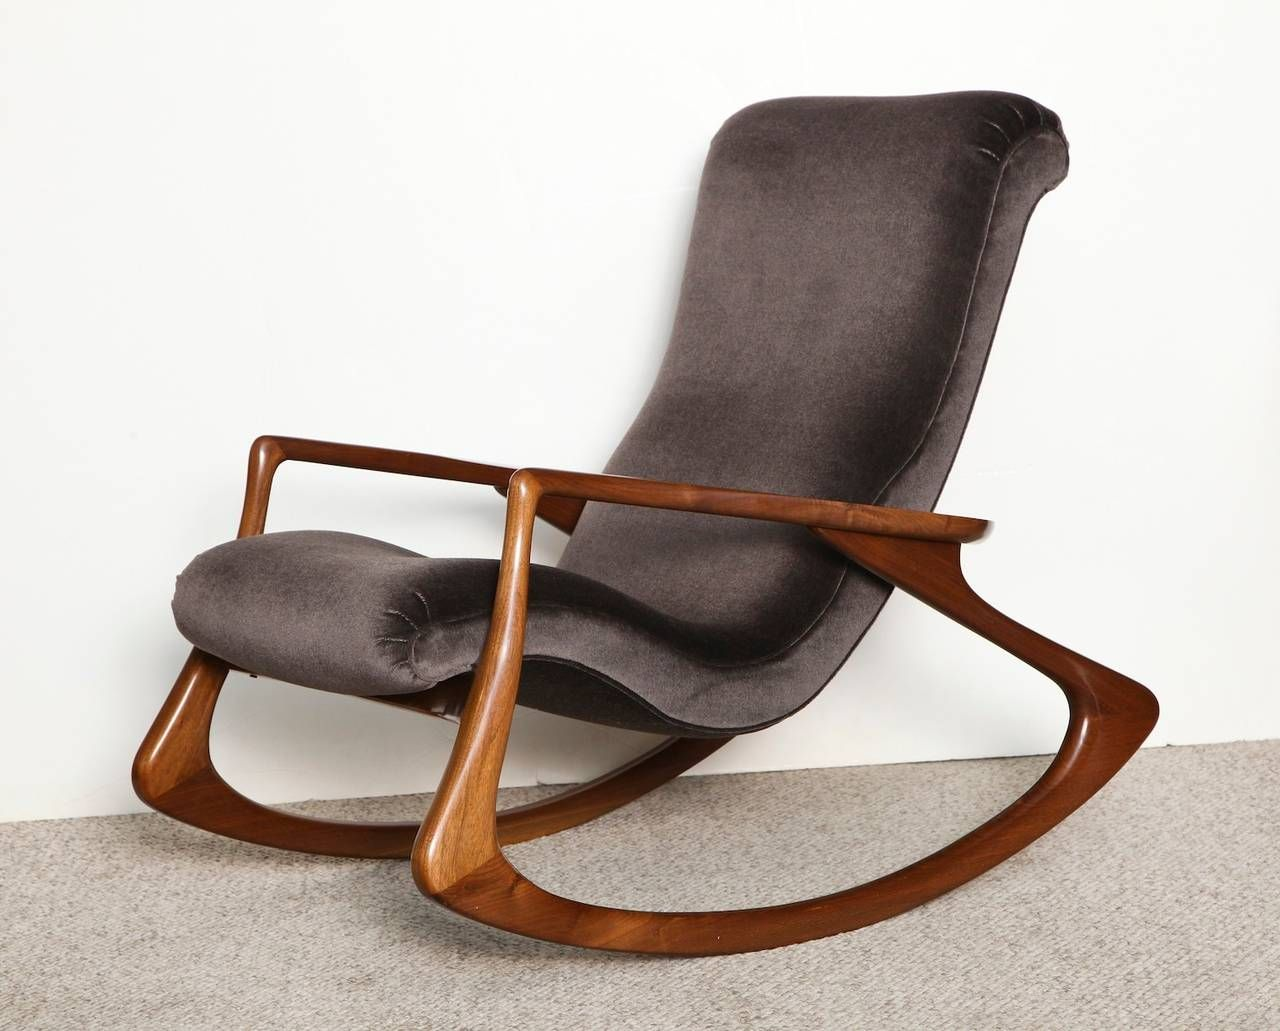 vladimir kagan rocking chair rocking chairs modern and modern chairs